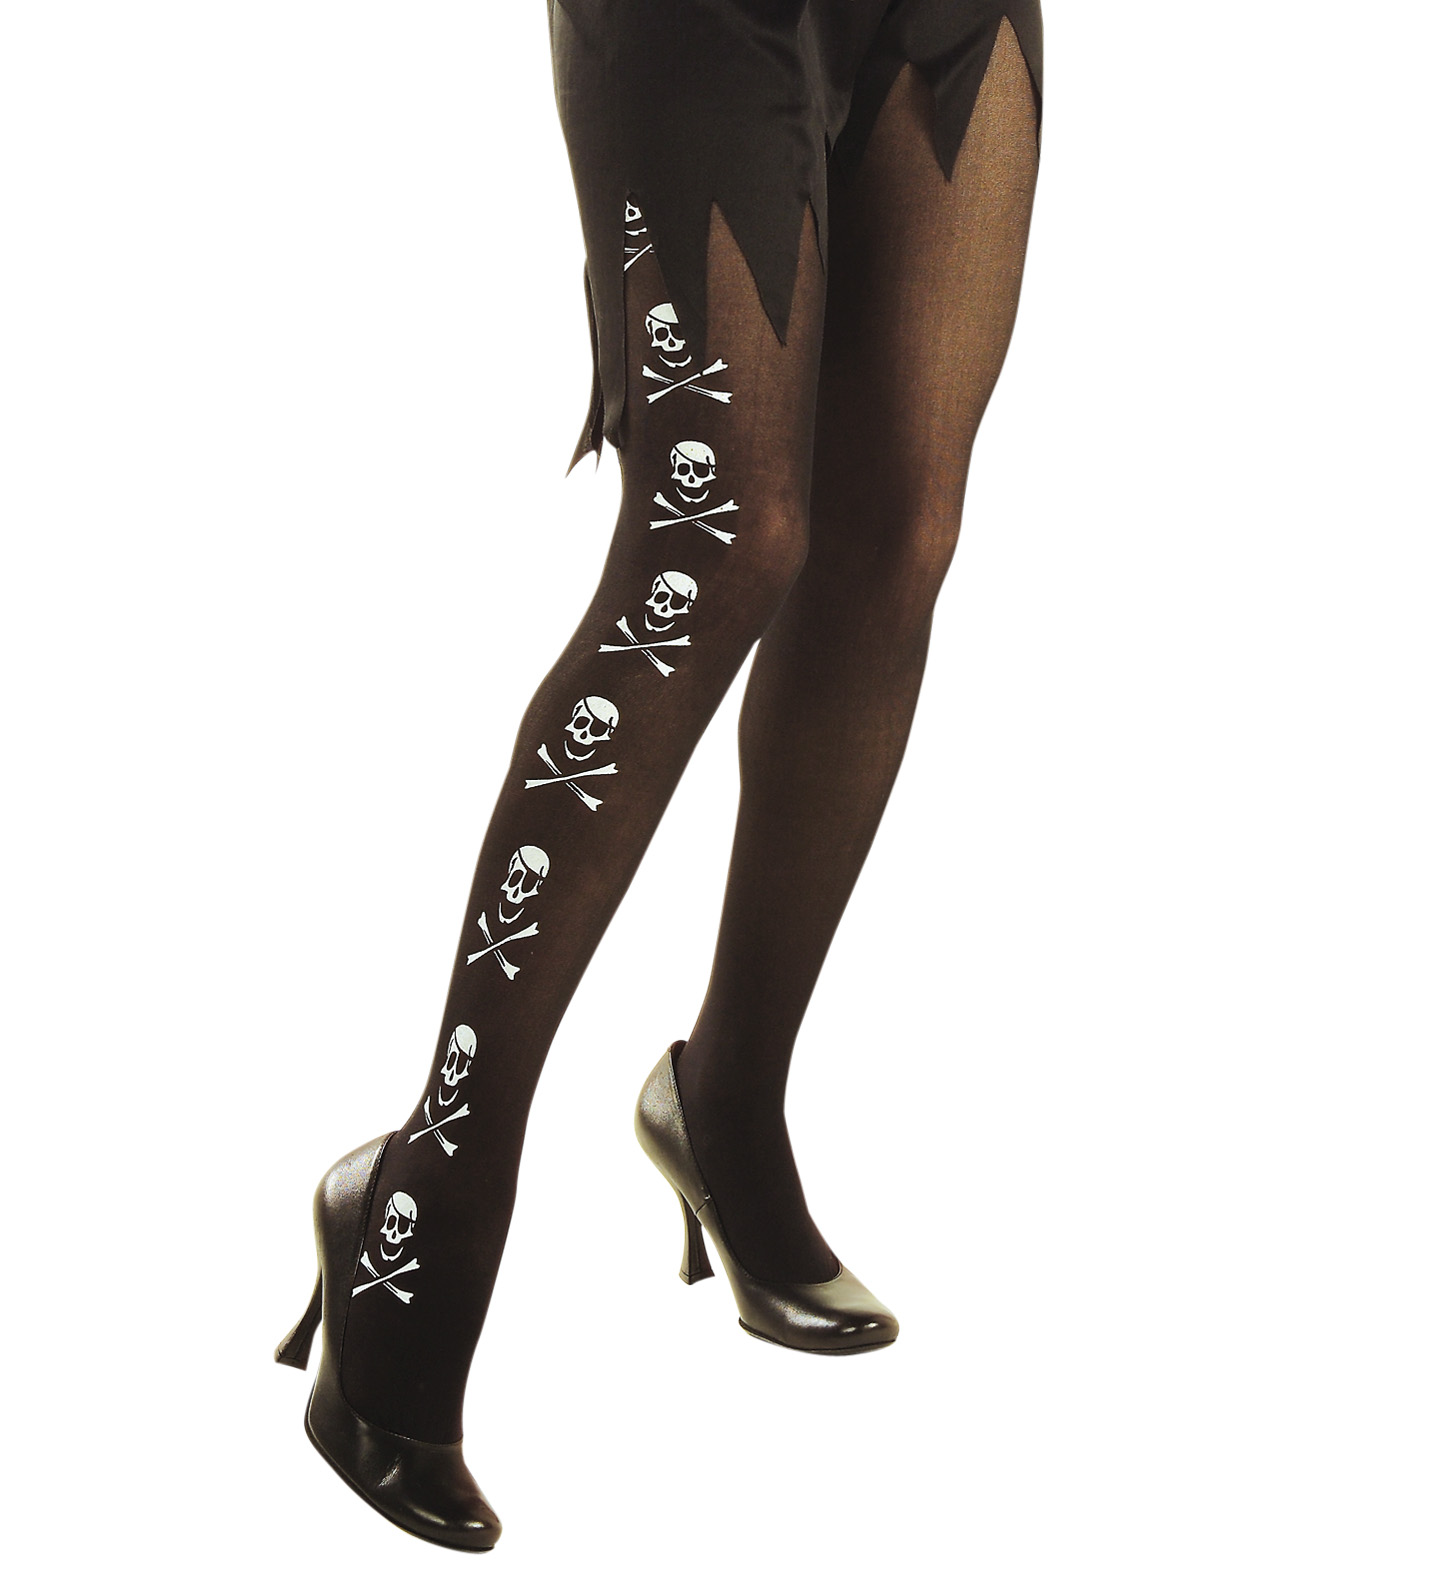 Pantyhose - Pirate Skull Bones Stockings Tights Pantyhose Lingerie Pirate